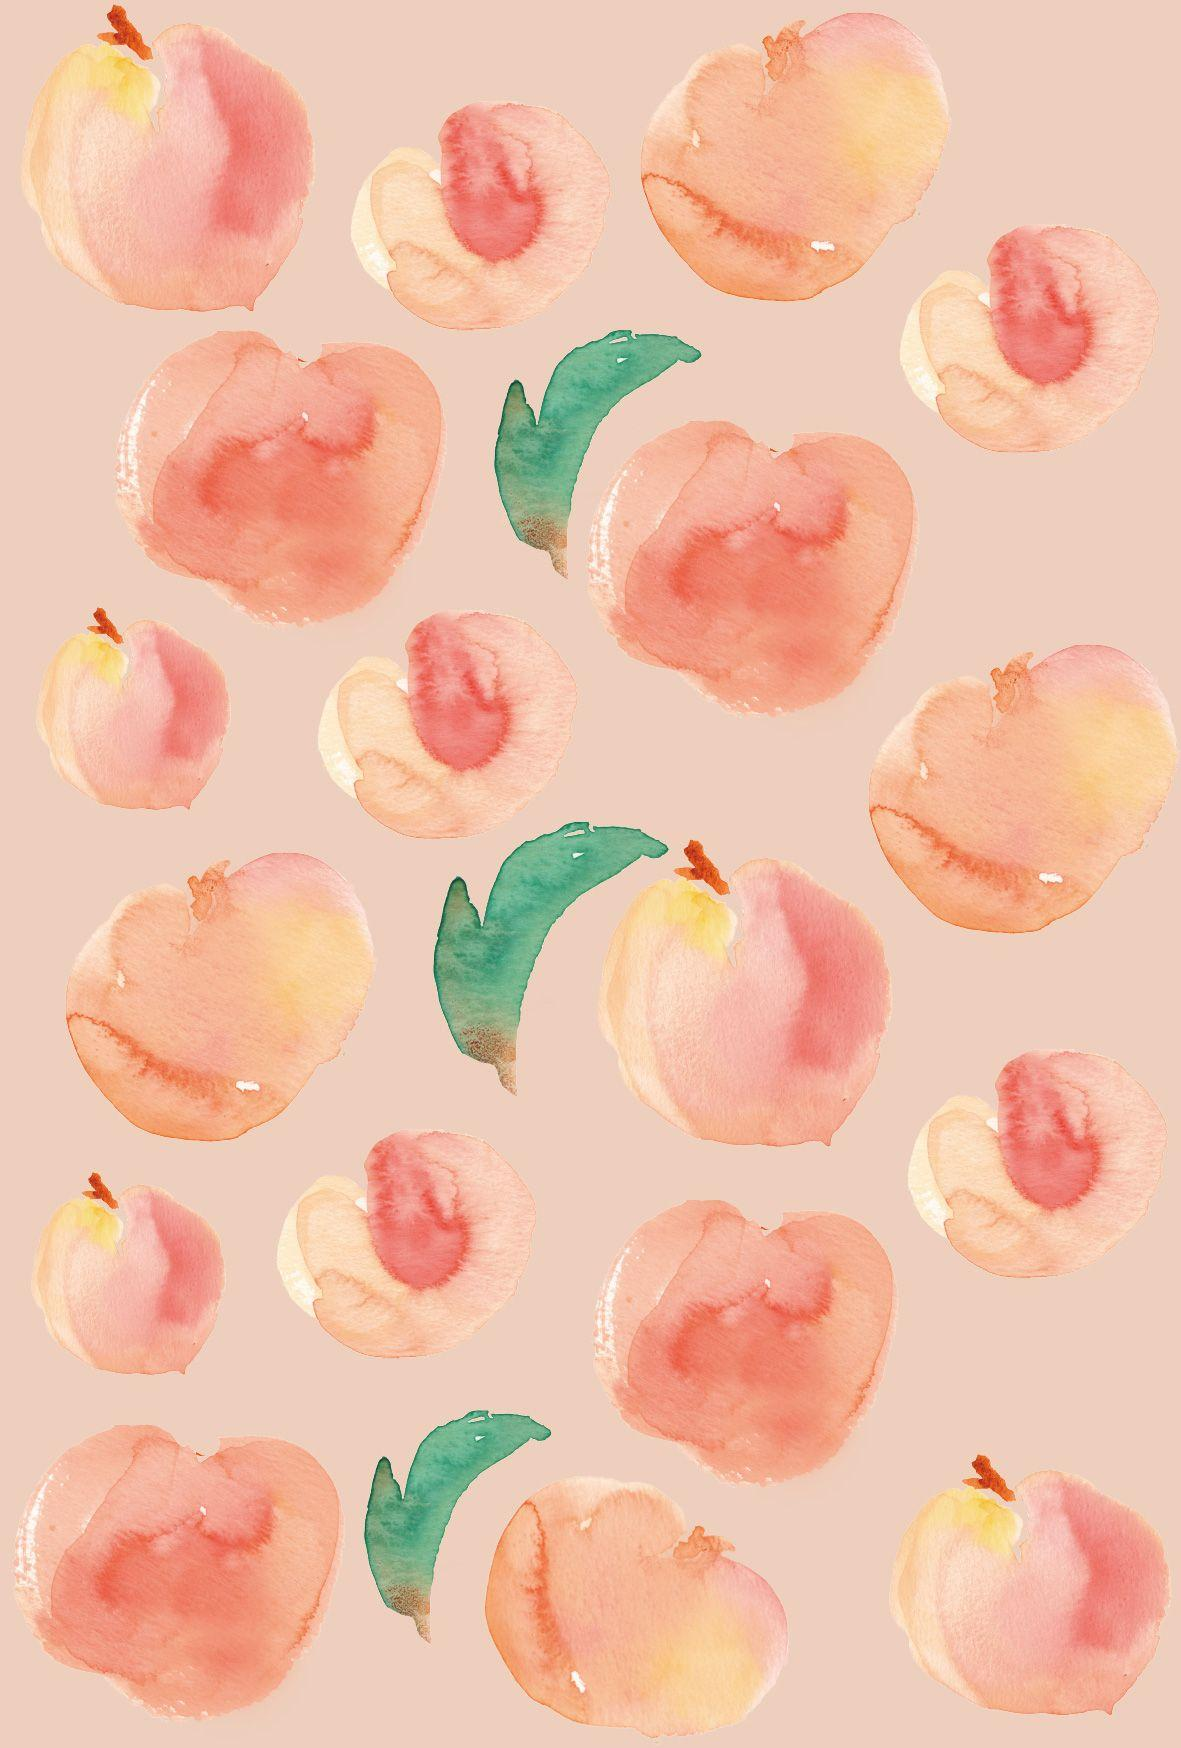 Peach Wallpapers Wallpaper Cave